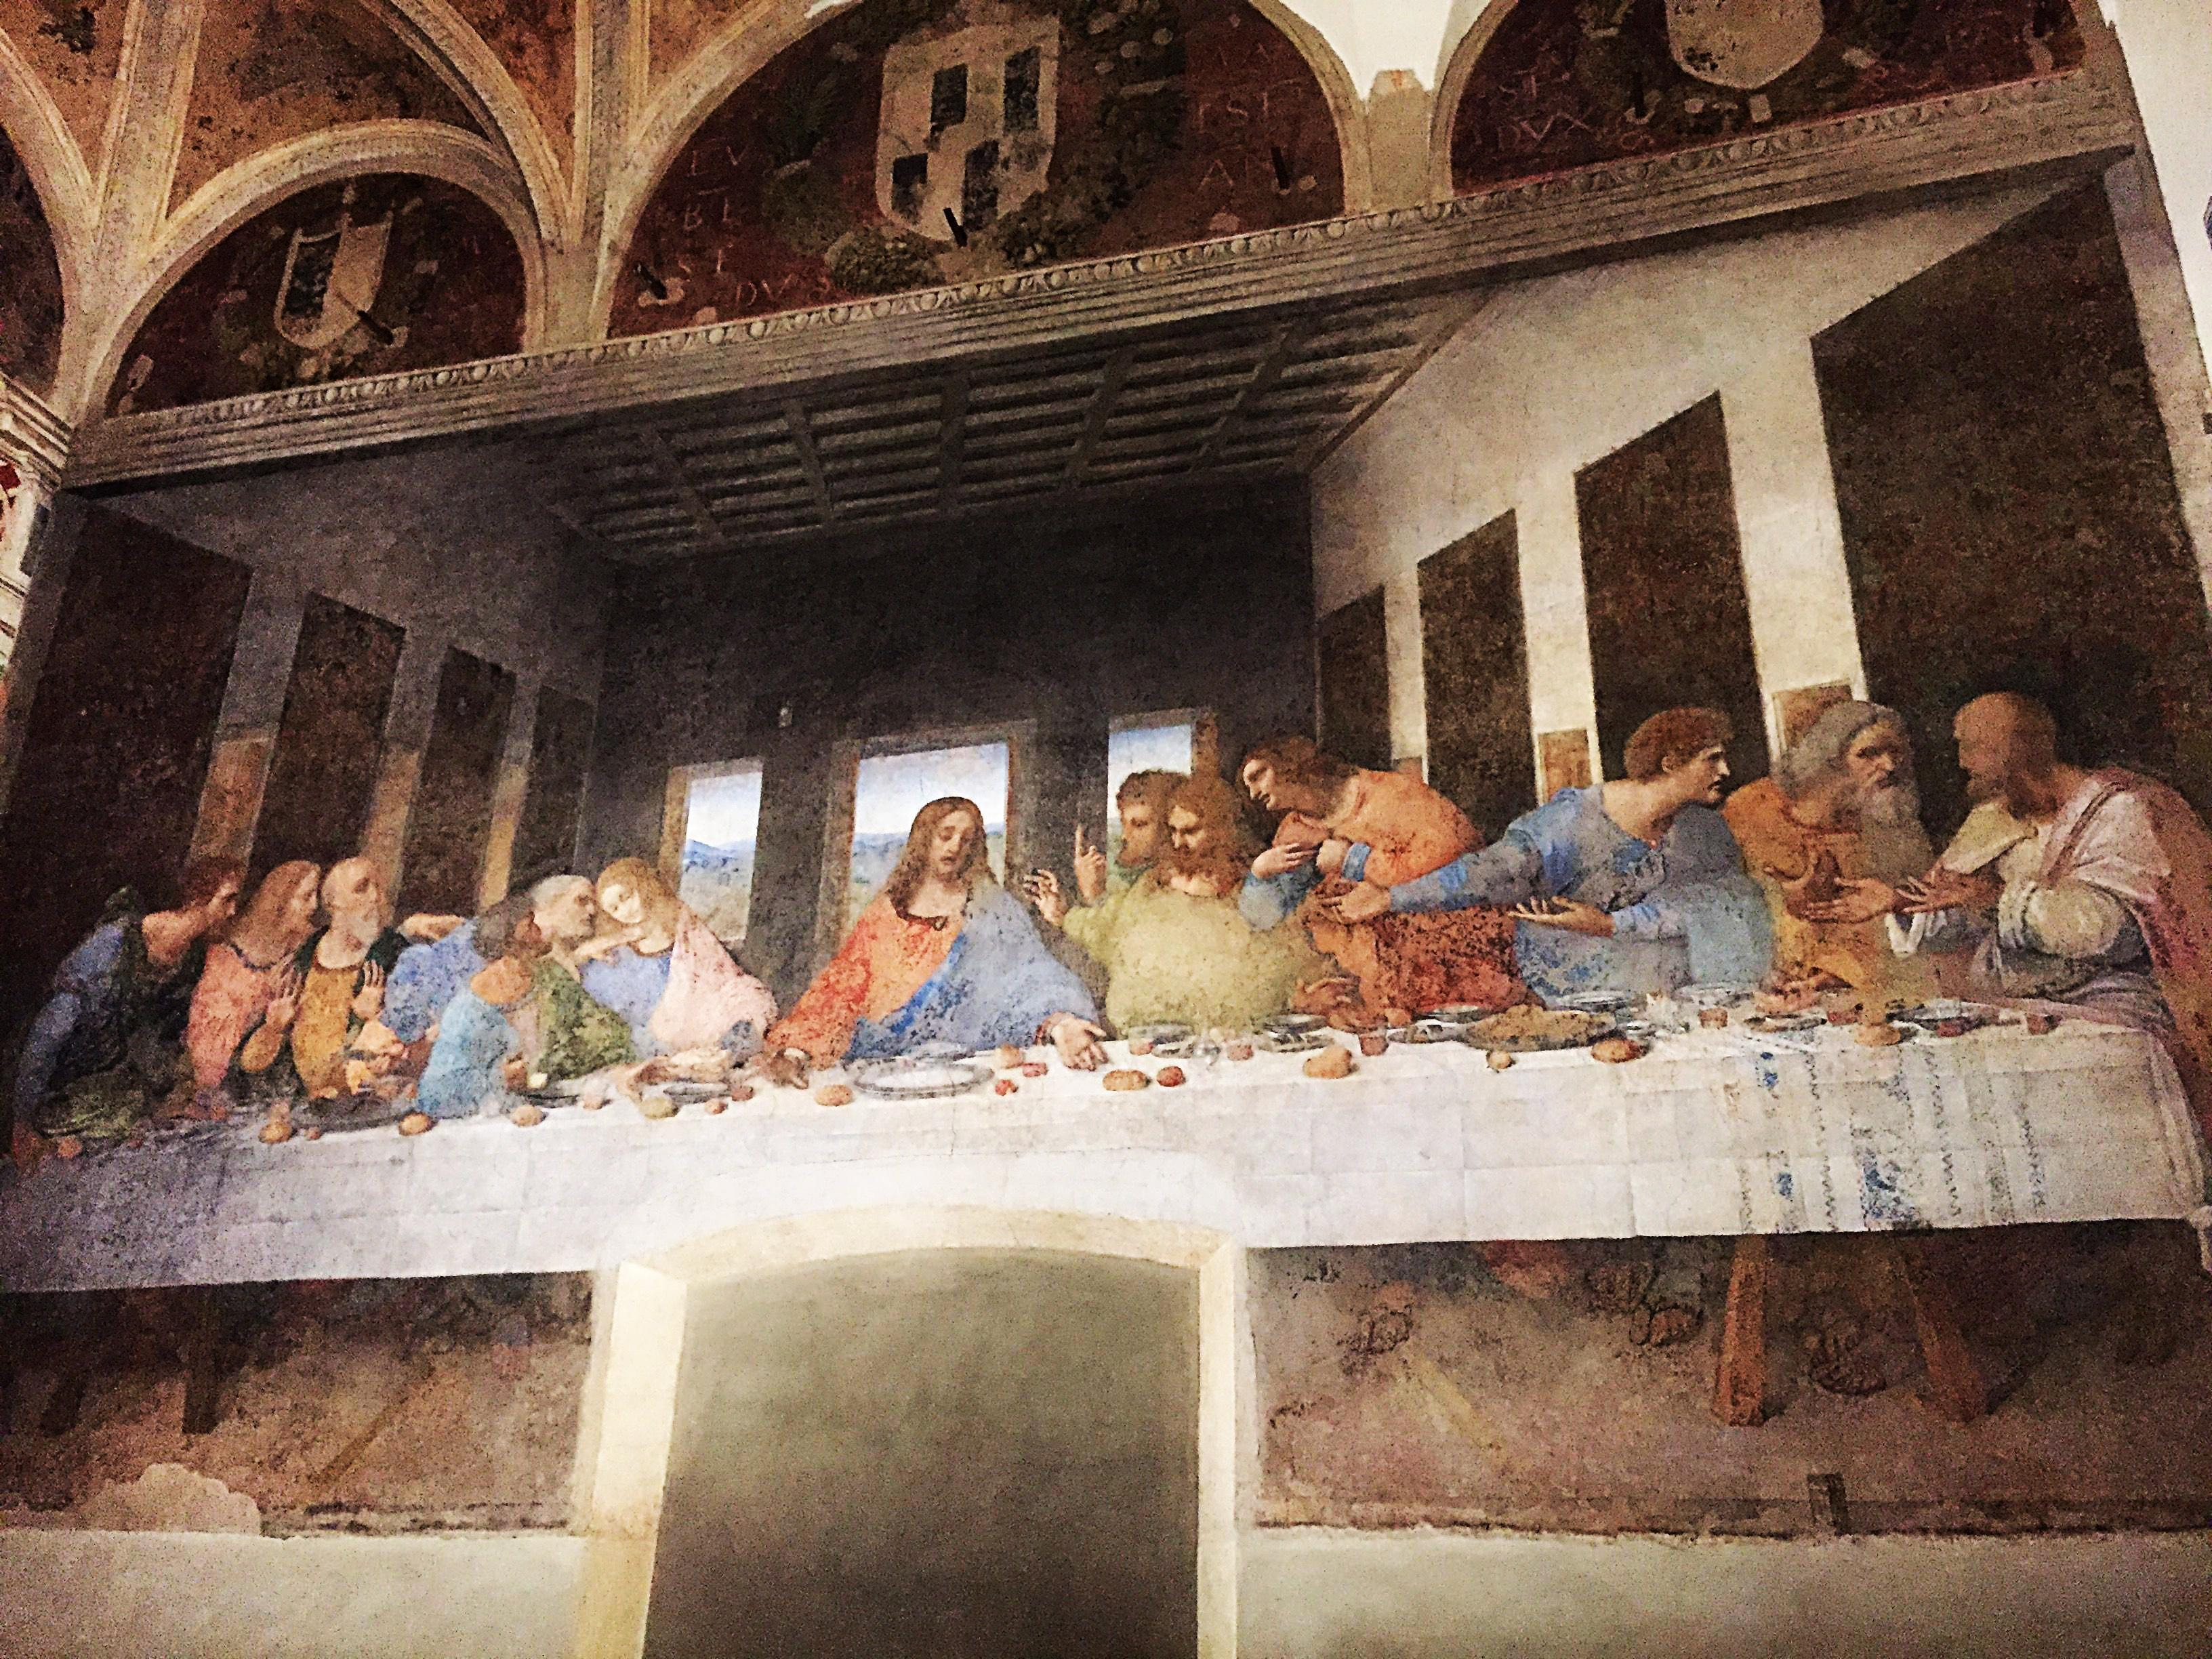 Skip the Line at Leonardo da Vinci's Last Supper